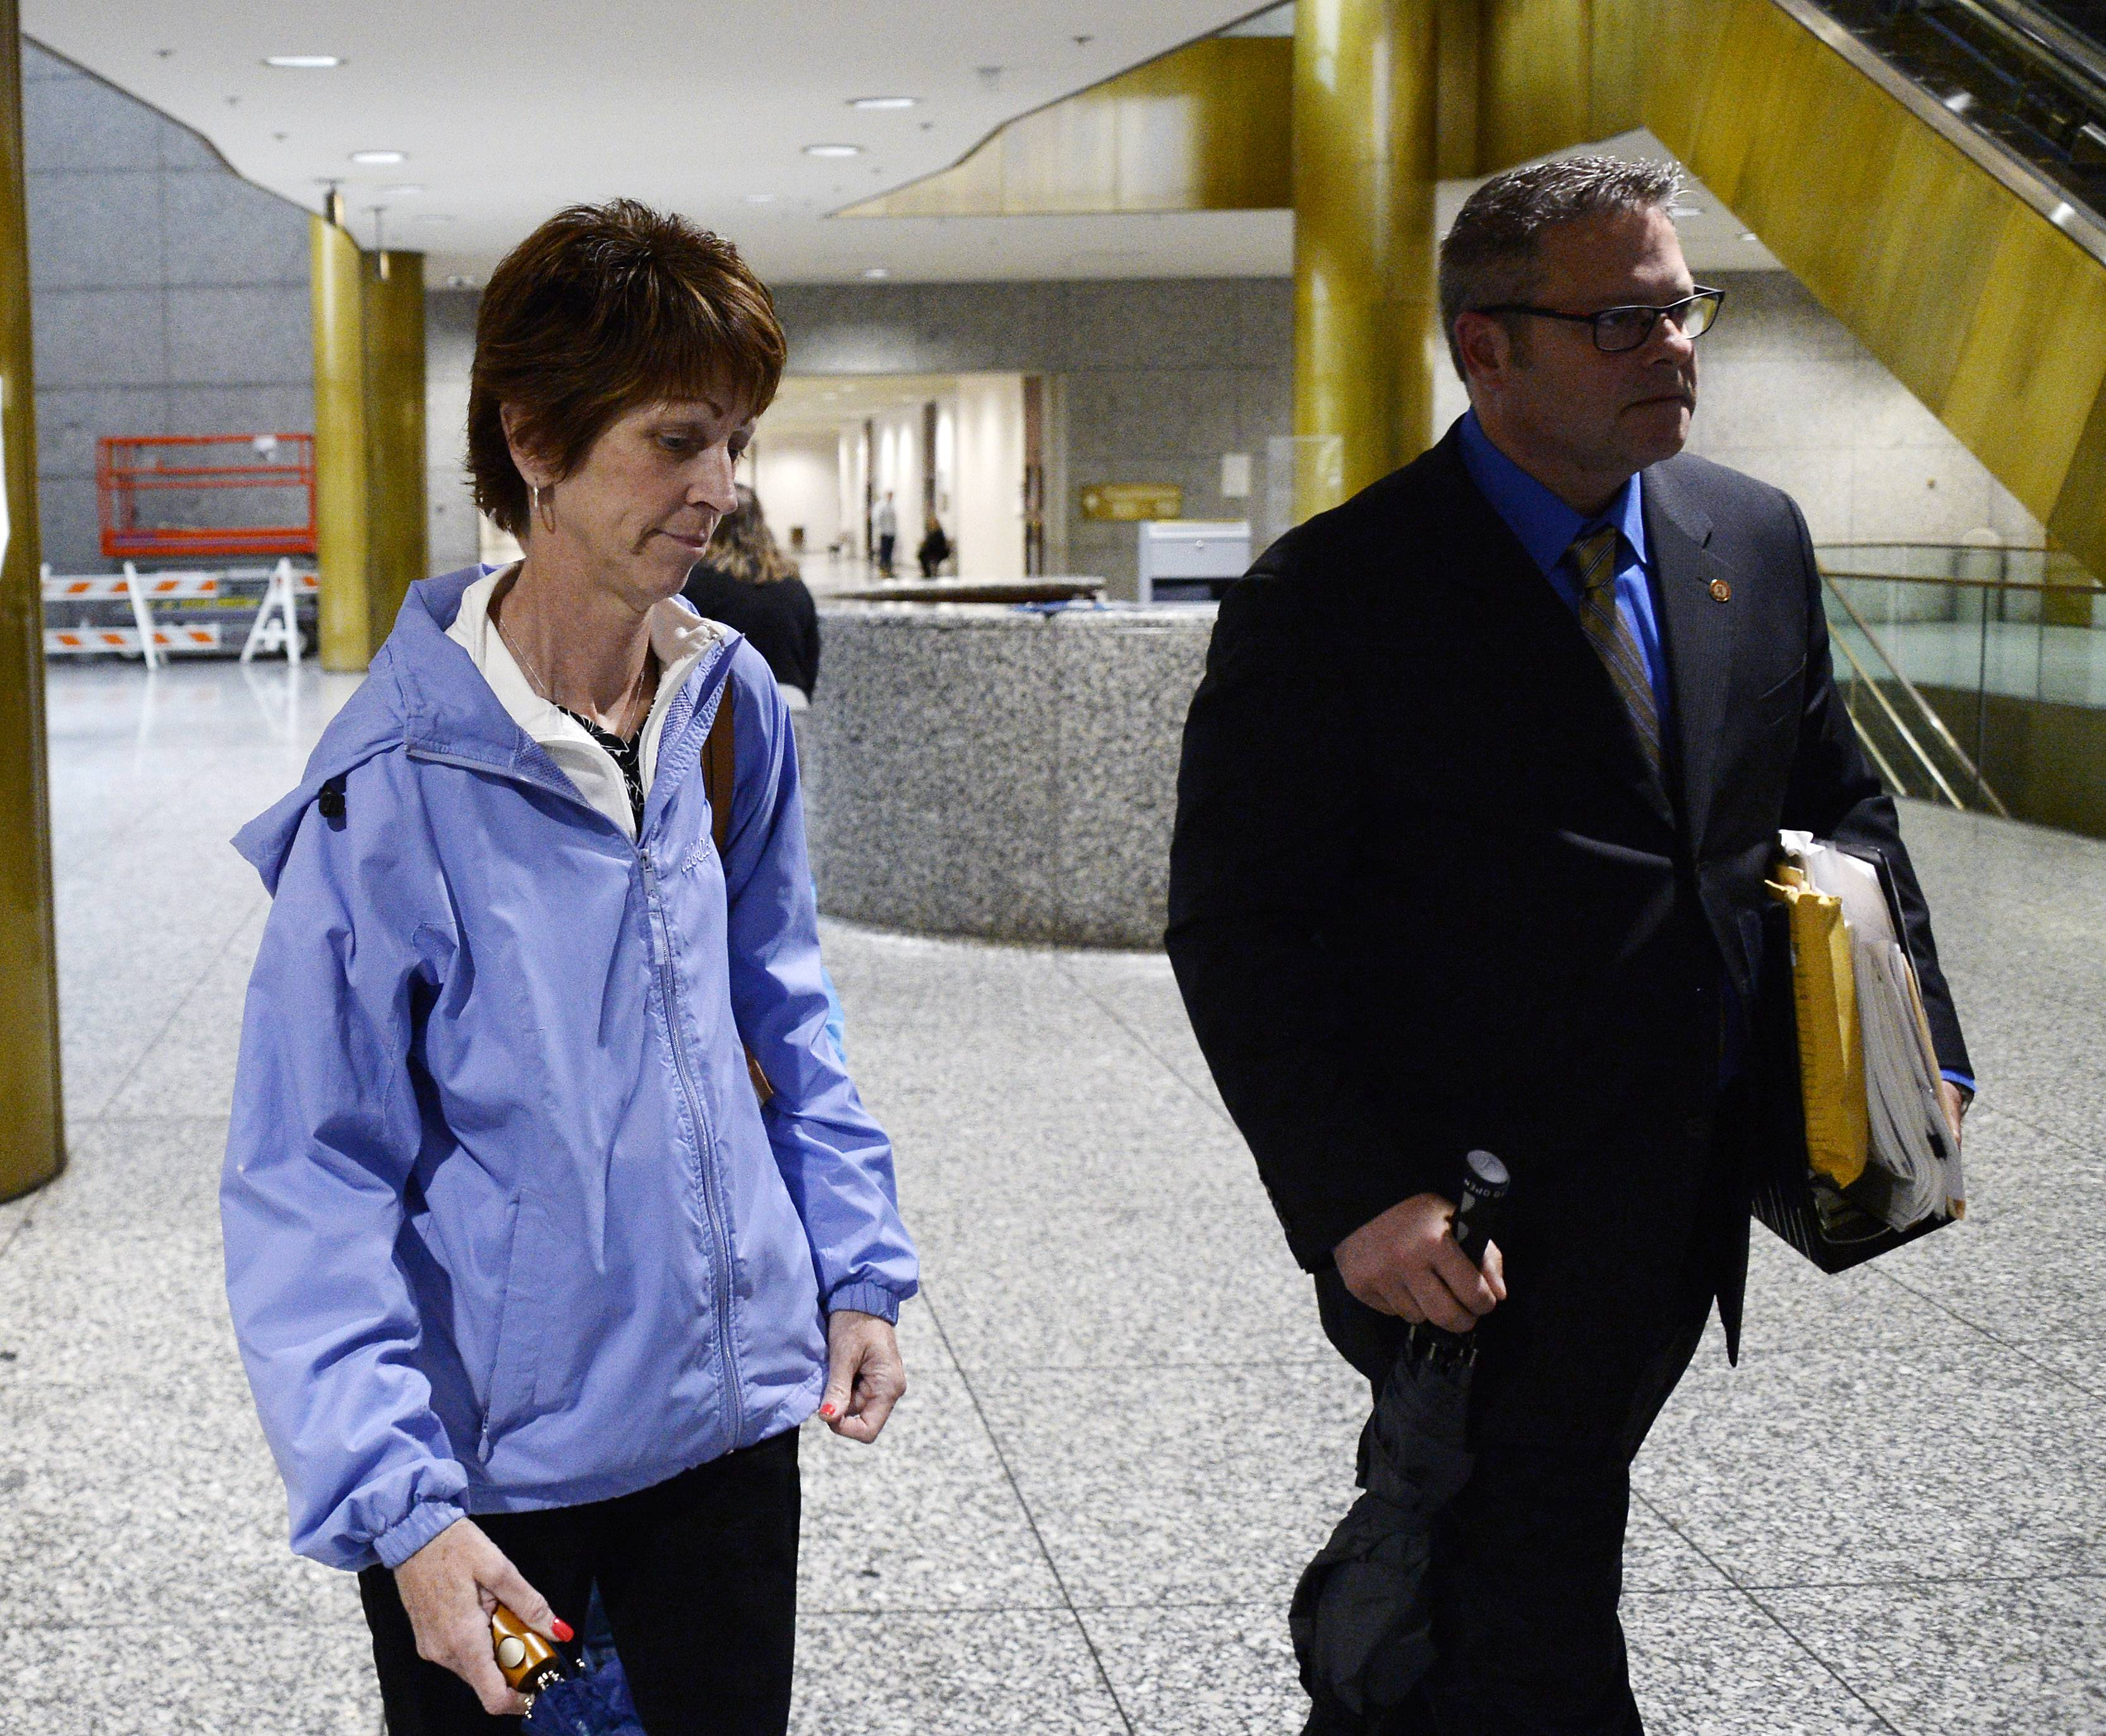 Schaumburg's Bonnie Liltz and her lawyer Thomas Glasgow leave the Rolling Meadows courthouse after Liltz pleaded guilty to involuntary manslaughter in the 2015 death of her disabled daughter, Courtney.